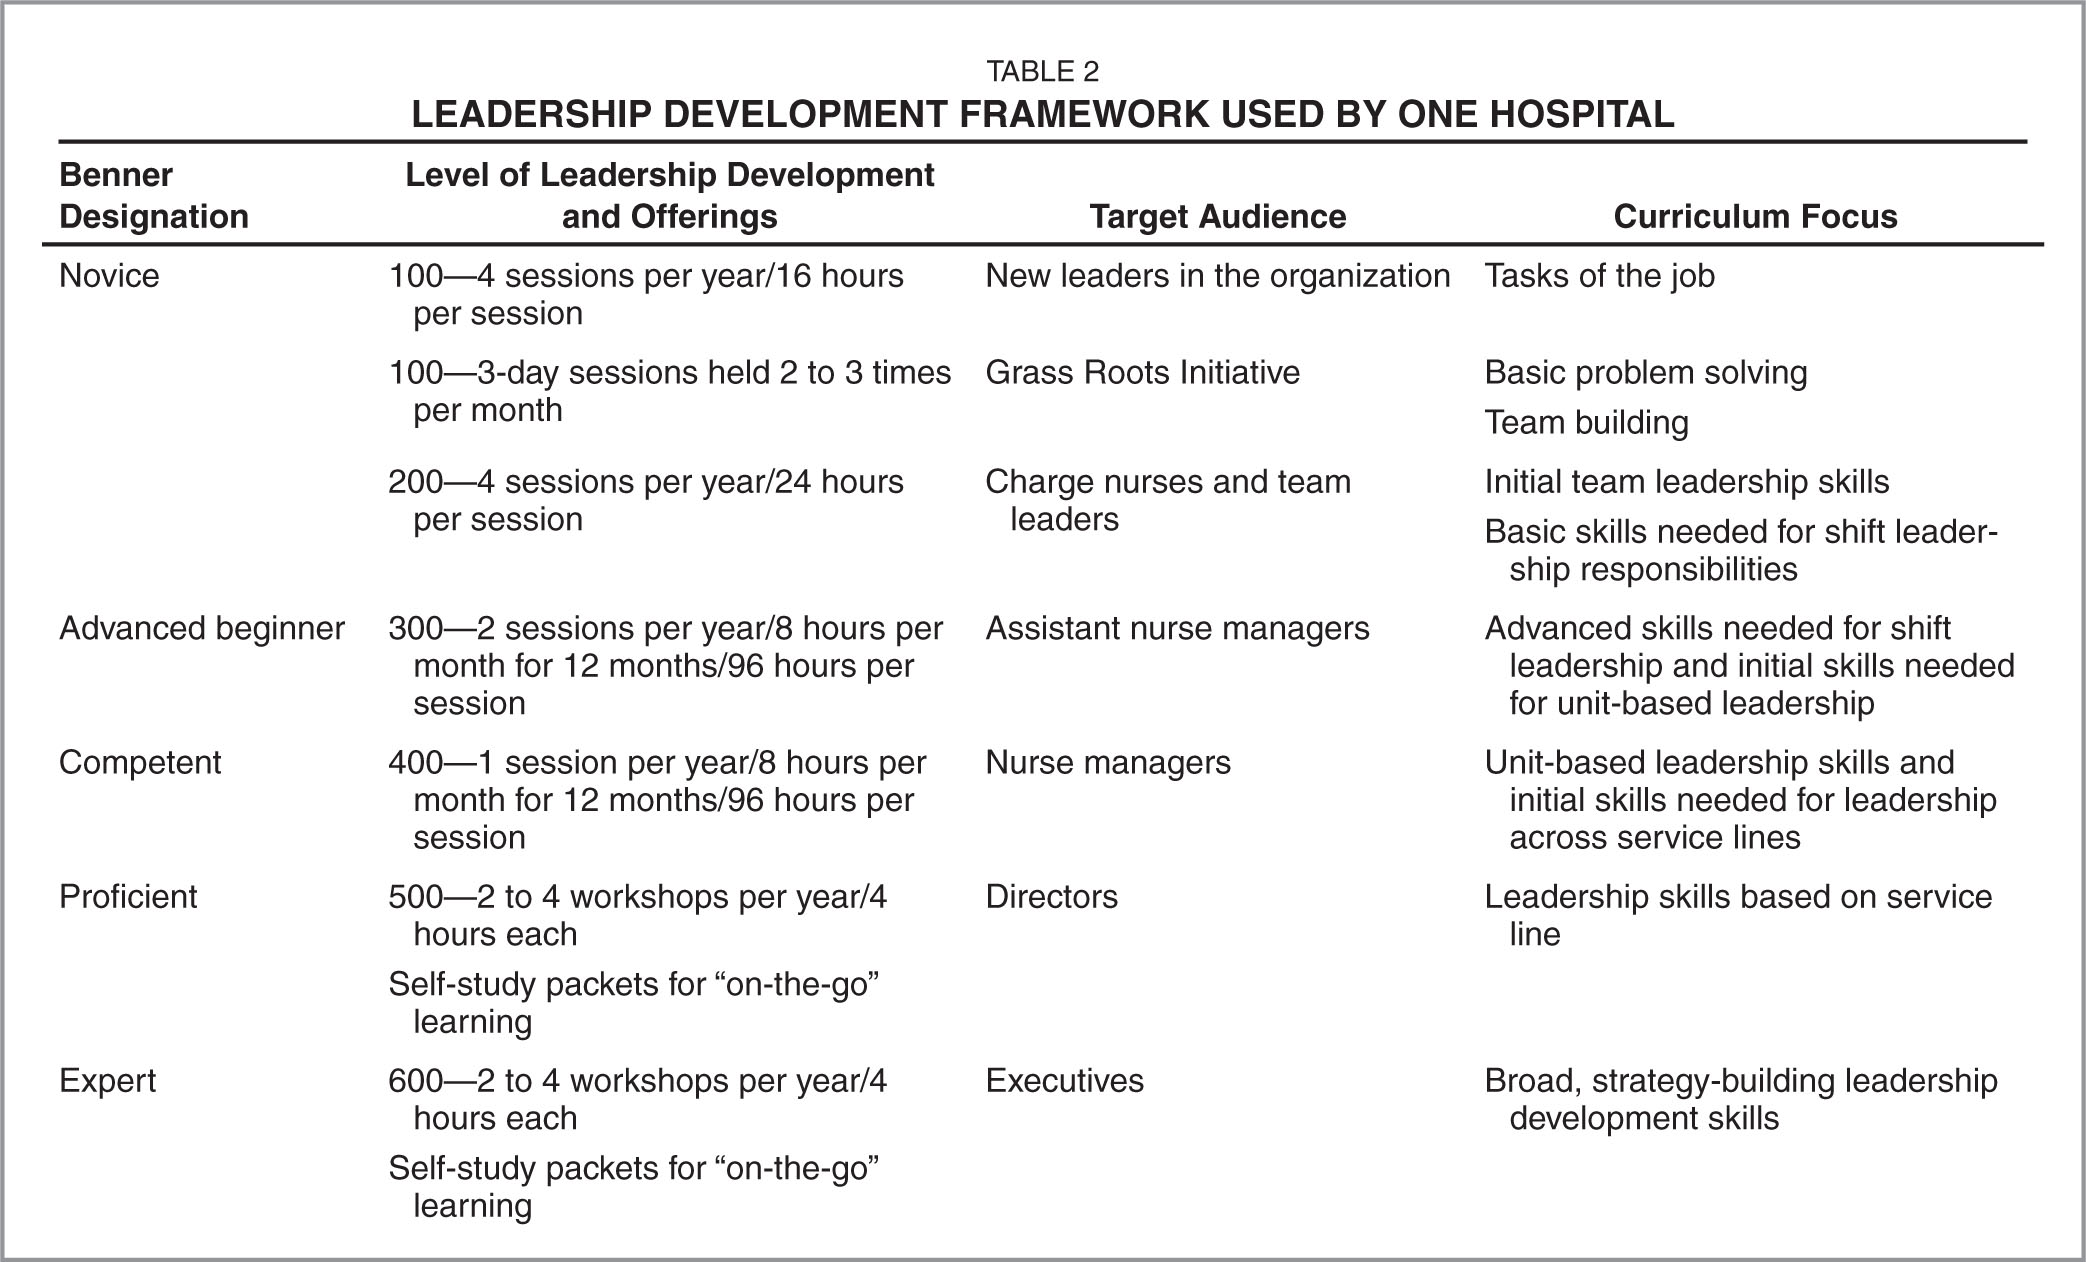 Leadership Development Framework Used by One Hospital